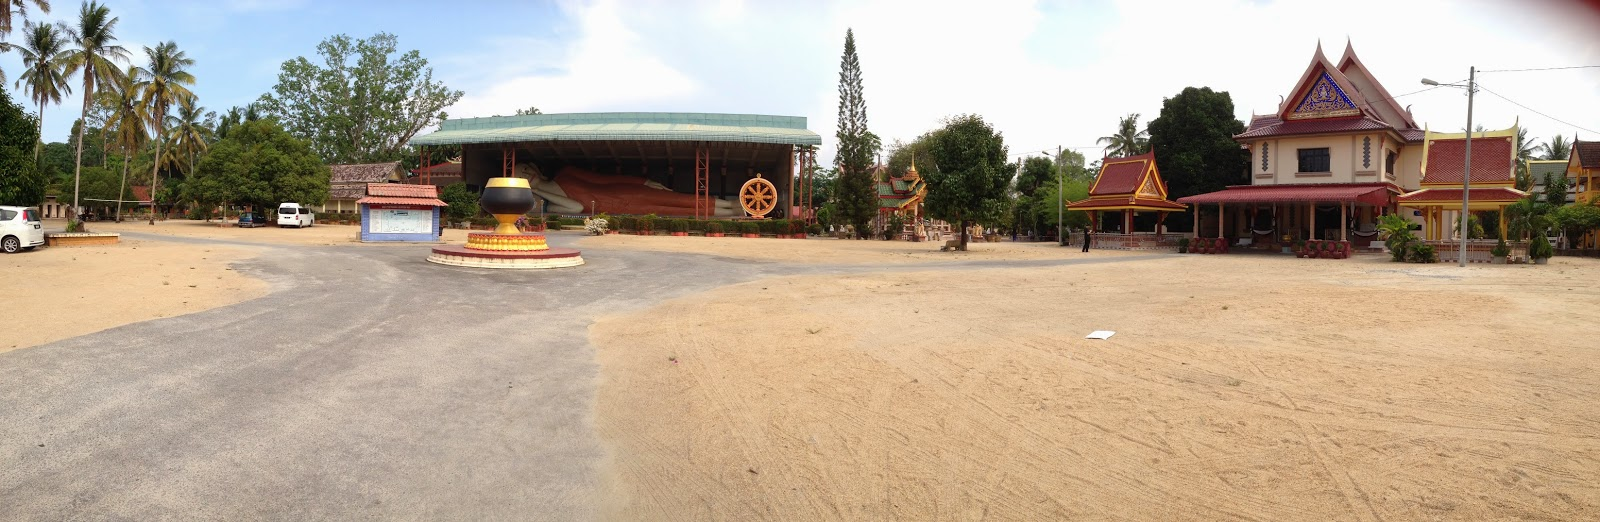 Wat Phothivihan ground